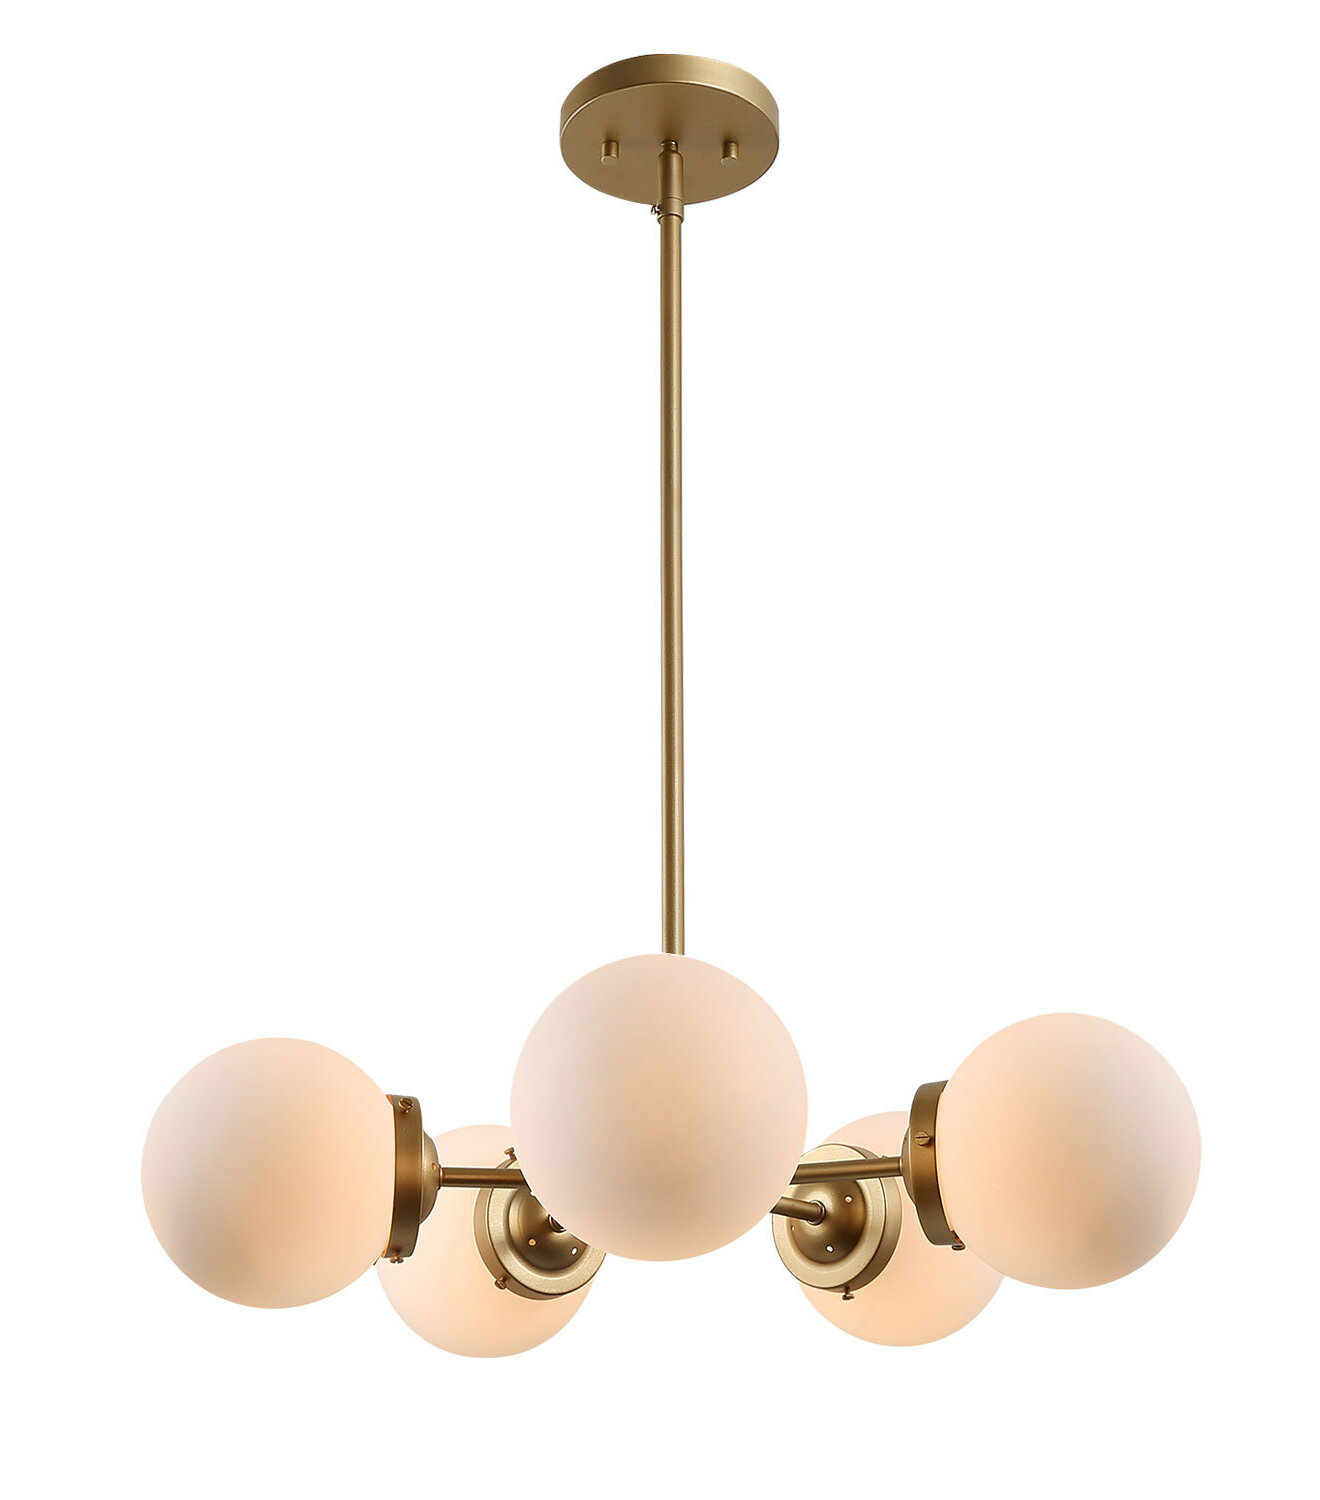 Brayden Studio Areswell 5 Light Sputnik Sphere Chandelier Wayfair